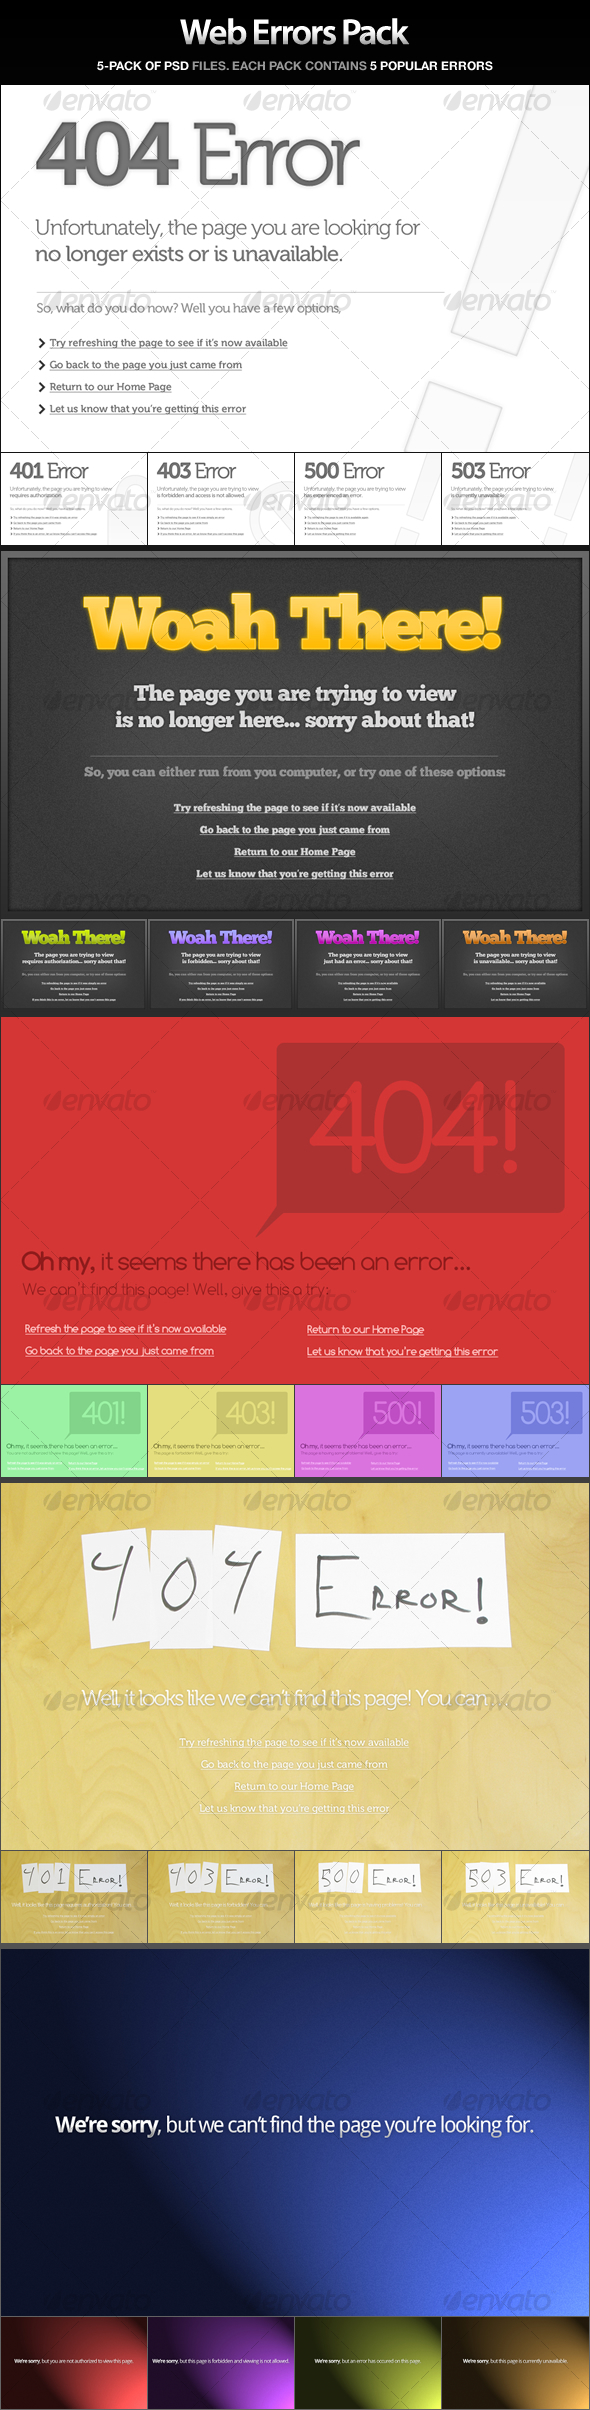 Web Errors Pack - 404, 401, 403, 500, 503 - Web Elements